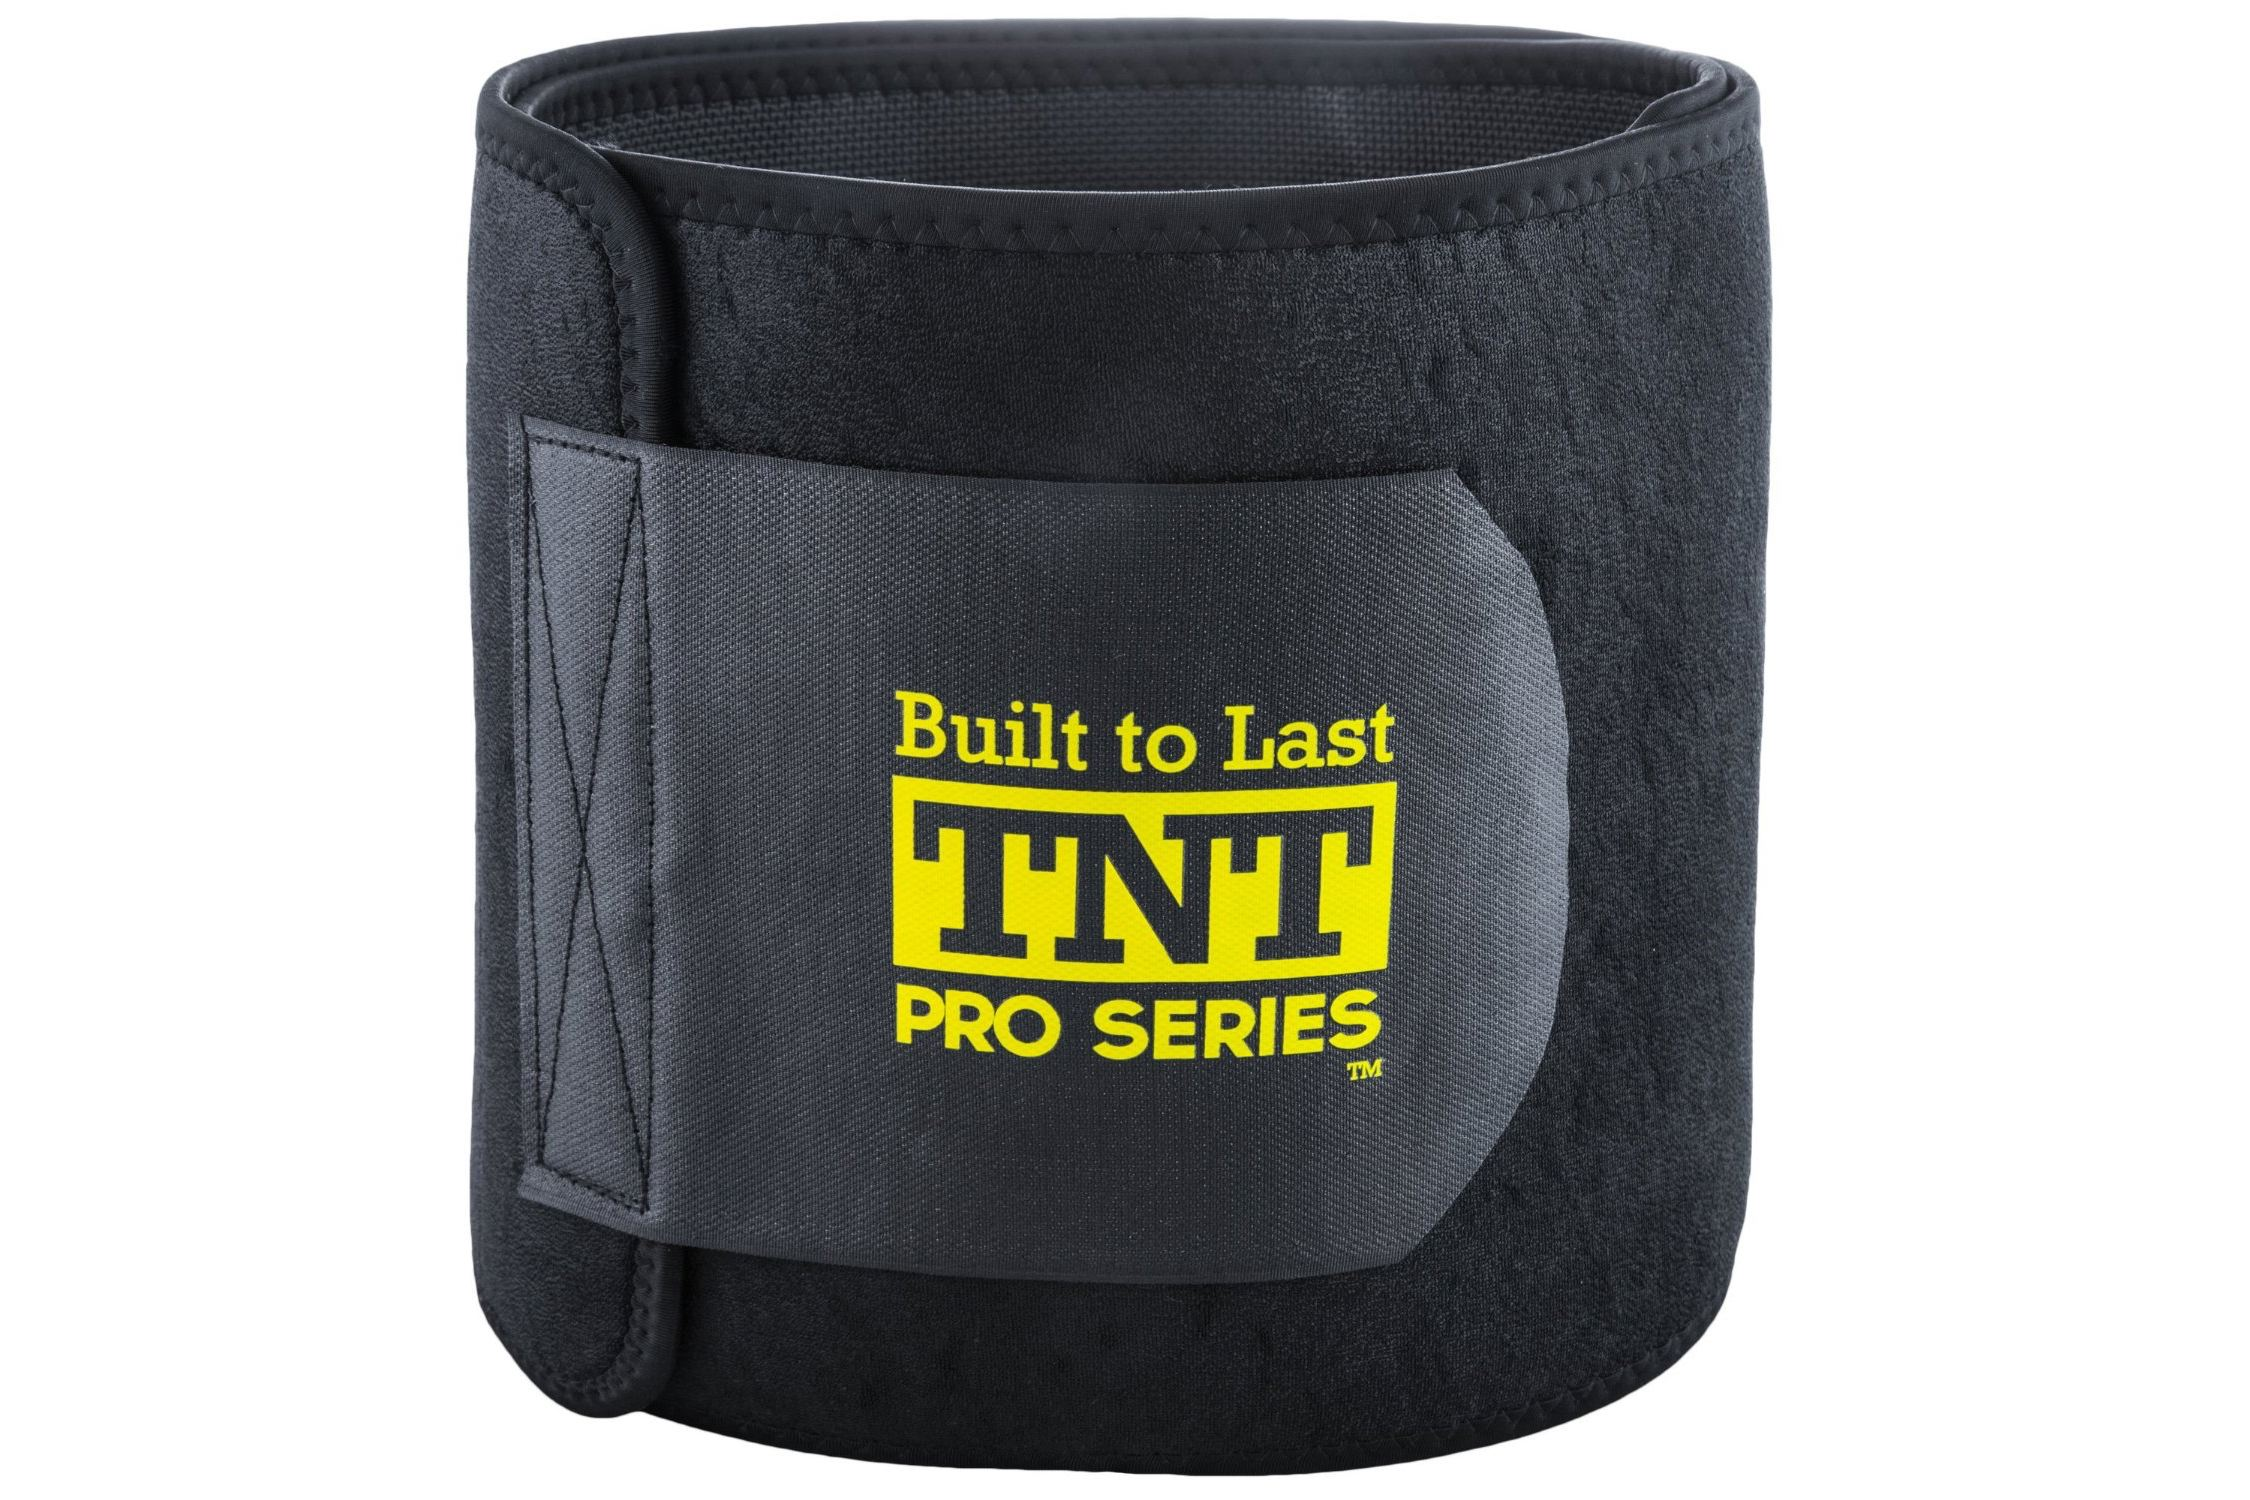 TNT Pro Series Waist Trimmer